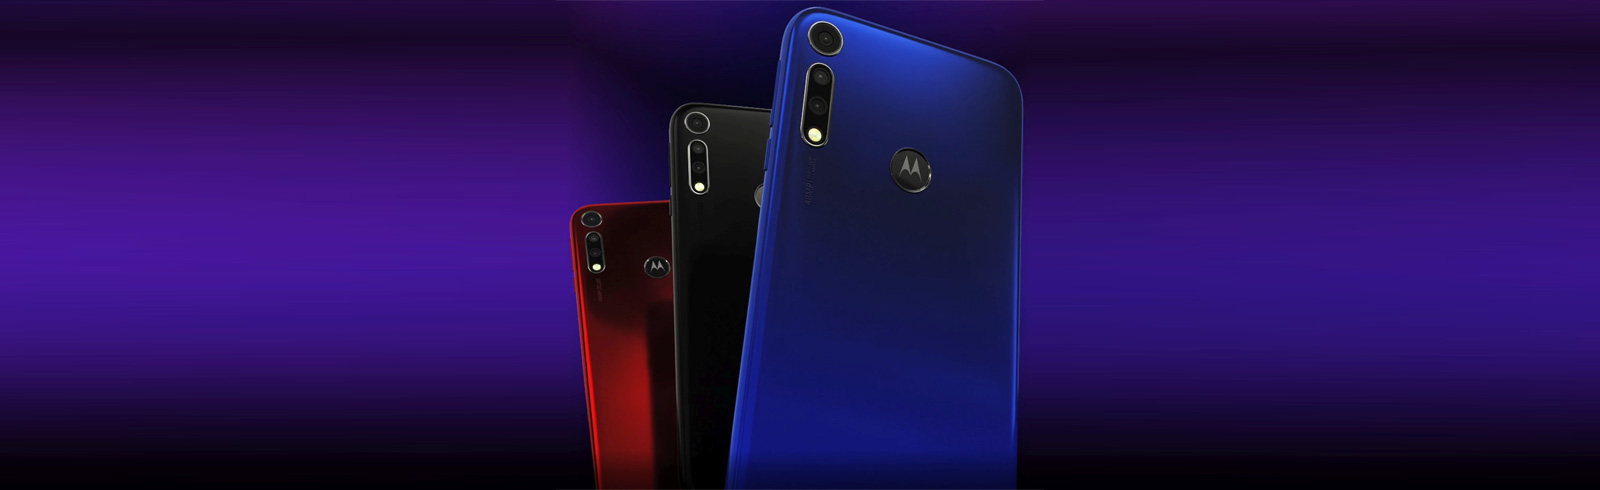 Moto G8 promo video leaks unveiling the design